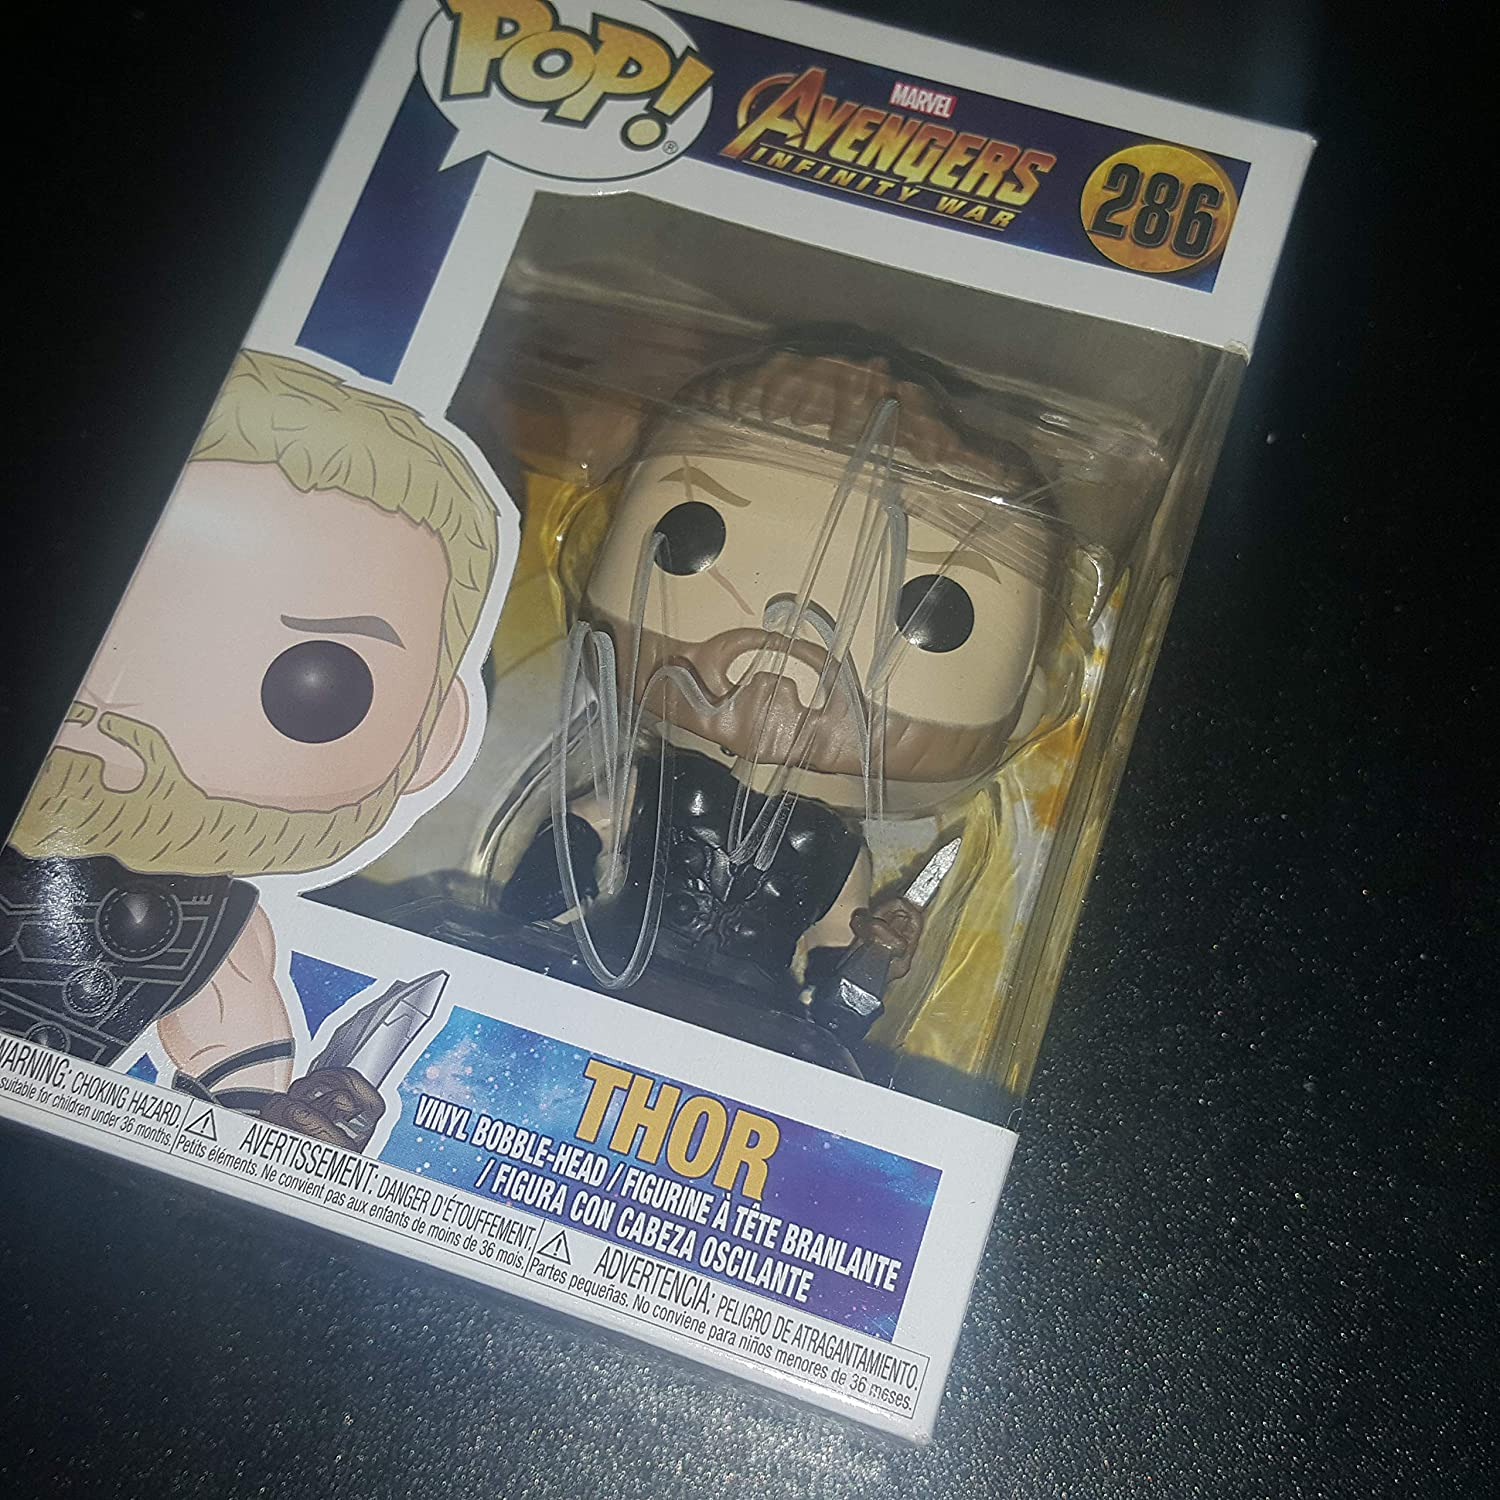 Chris Hemsworth - Autographed Signed THOR FUNKO POP 286 Vinyl Figure - Avengers Infinity War - MARVEL at Amazons Entertainment Collectibles Store